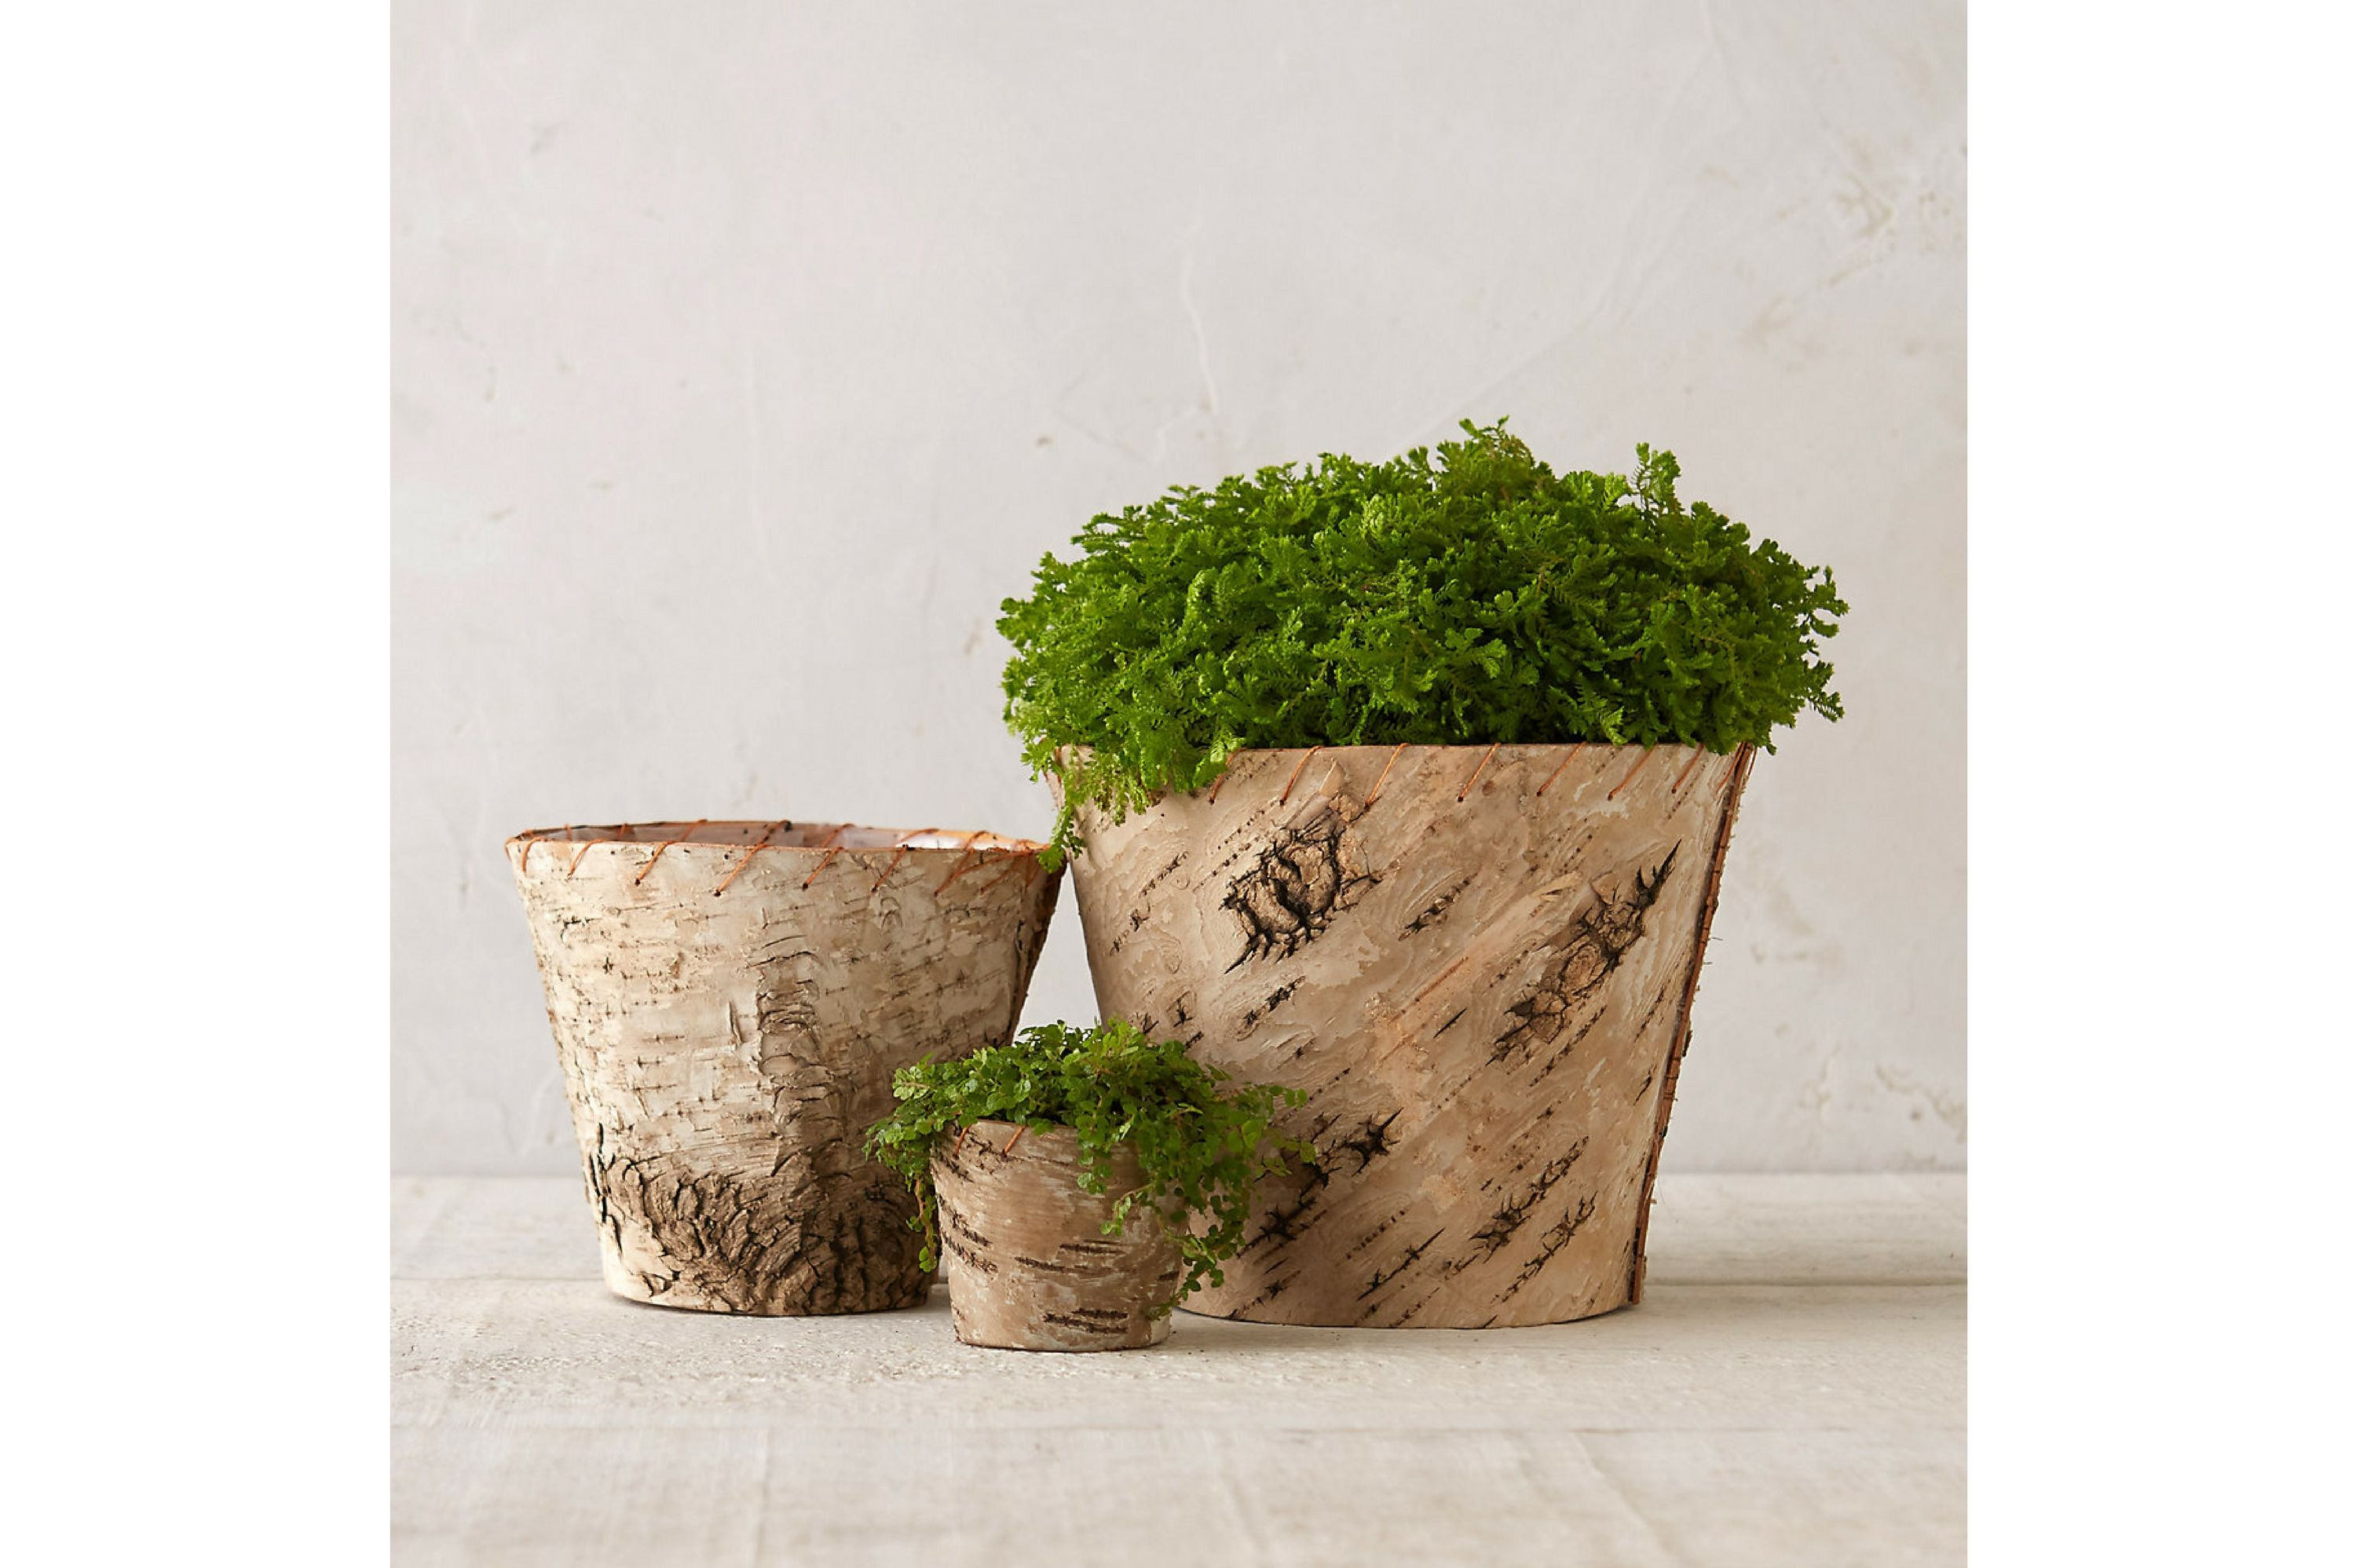 16 Perfect Pots for Indoor Plants Under $50 - Southern Living on what are these plants, what are foliage plants, what are desert plants, what are succulent plants, what are industrial plants, what are flowering plants, what are elephant ear plants, what are bog plants, taking care of house plants, what are perennial plants, what are native plants, what are host plants, what are snake plants, what are geranium plants, what are seed plants, what are water plants, what are terrarium plants, what are hosta plants, what are exotic plants, what are medicinal plants,